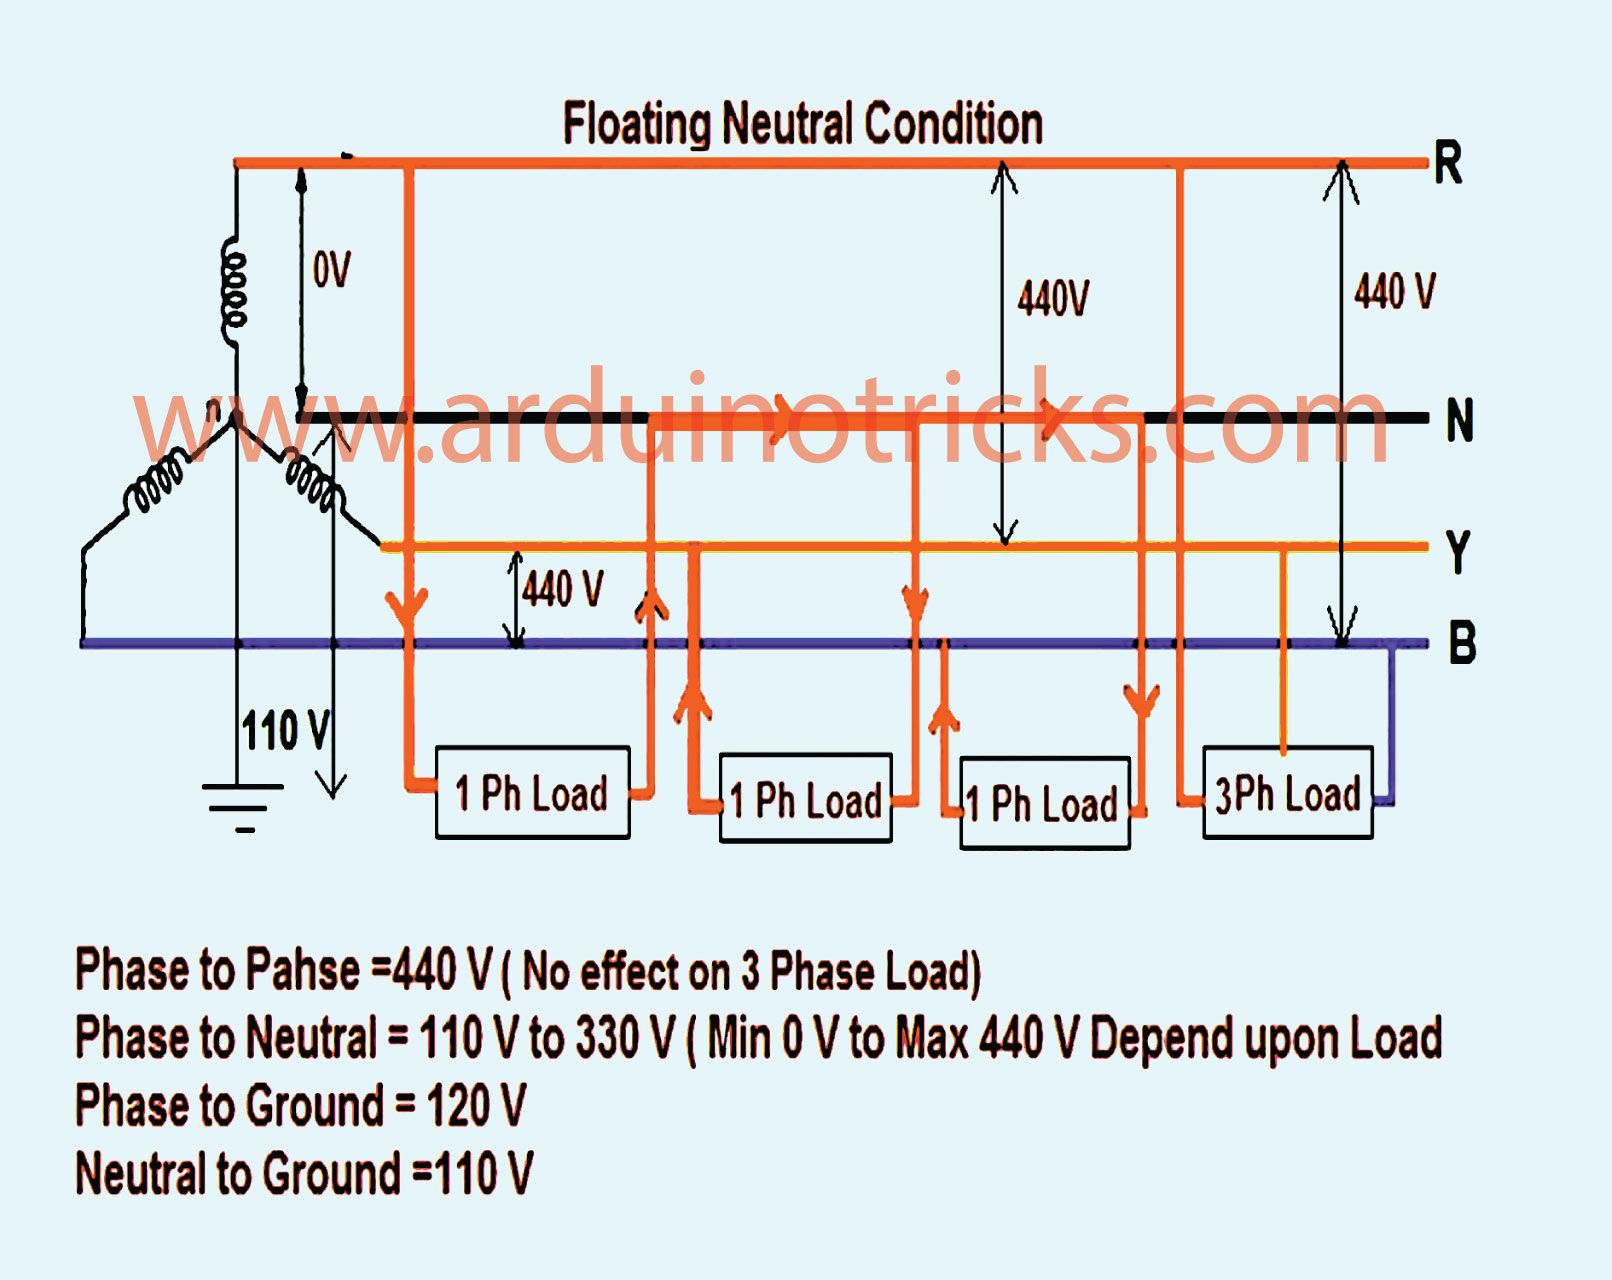 3Phase Electric Line Convert to SinglePhase Arduino